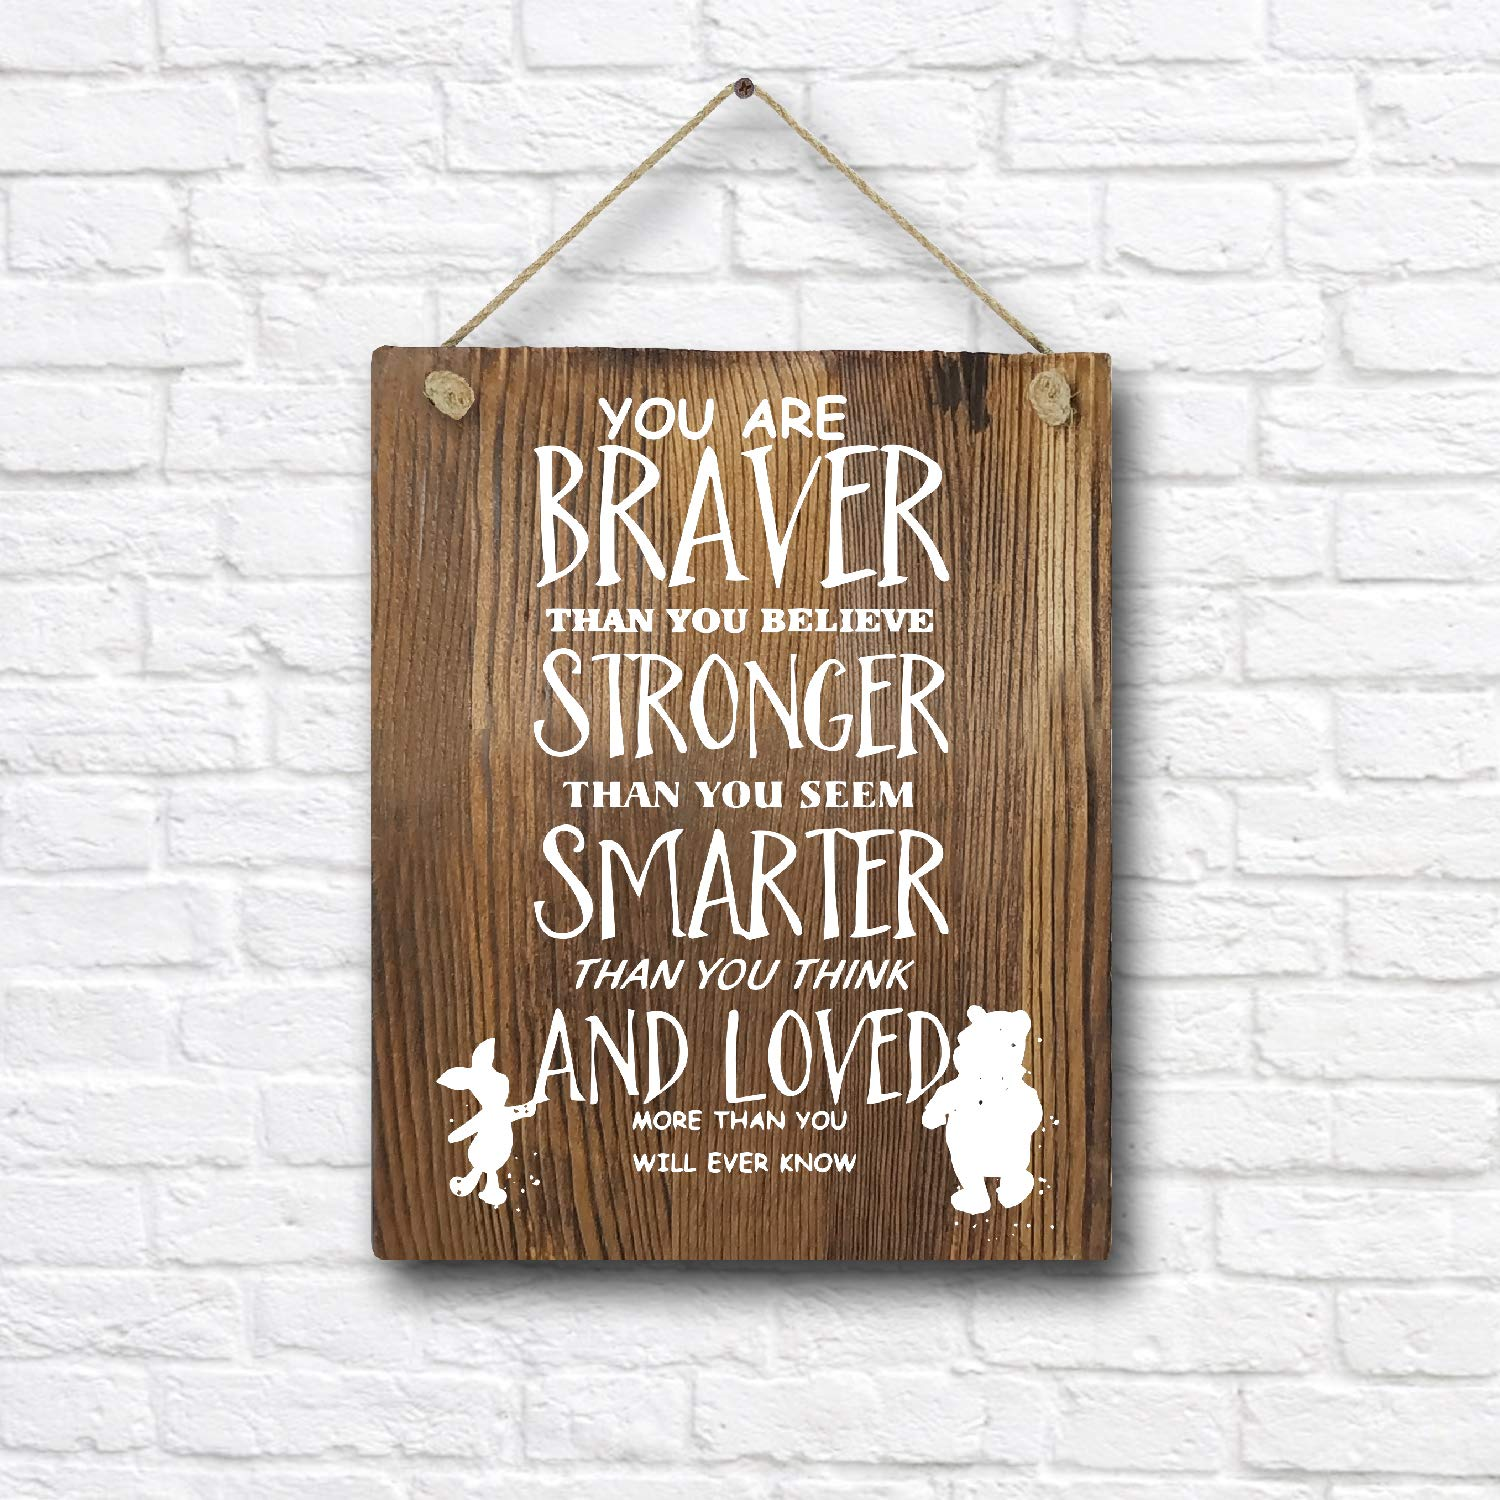 Classic Winnie The Pooh Quotes And Saying Rustic Wood Wall Art Decor 8 X10 Wooden Hanging Art Motivational Inspirational Classroom Office